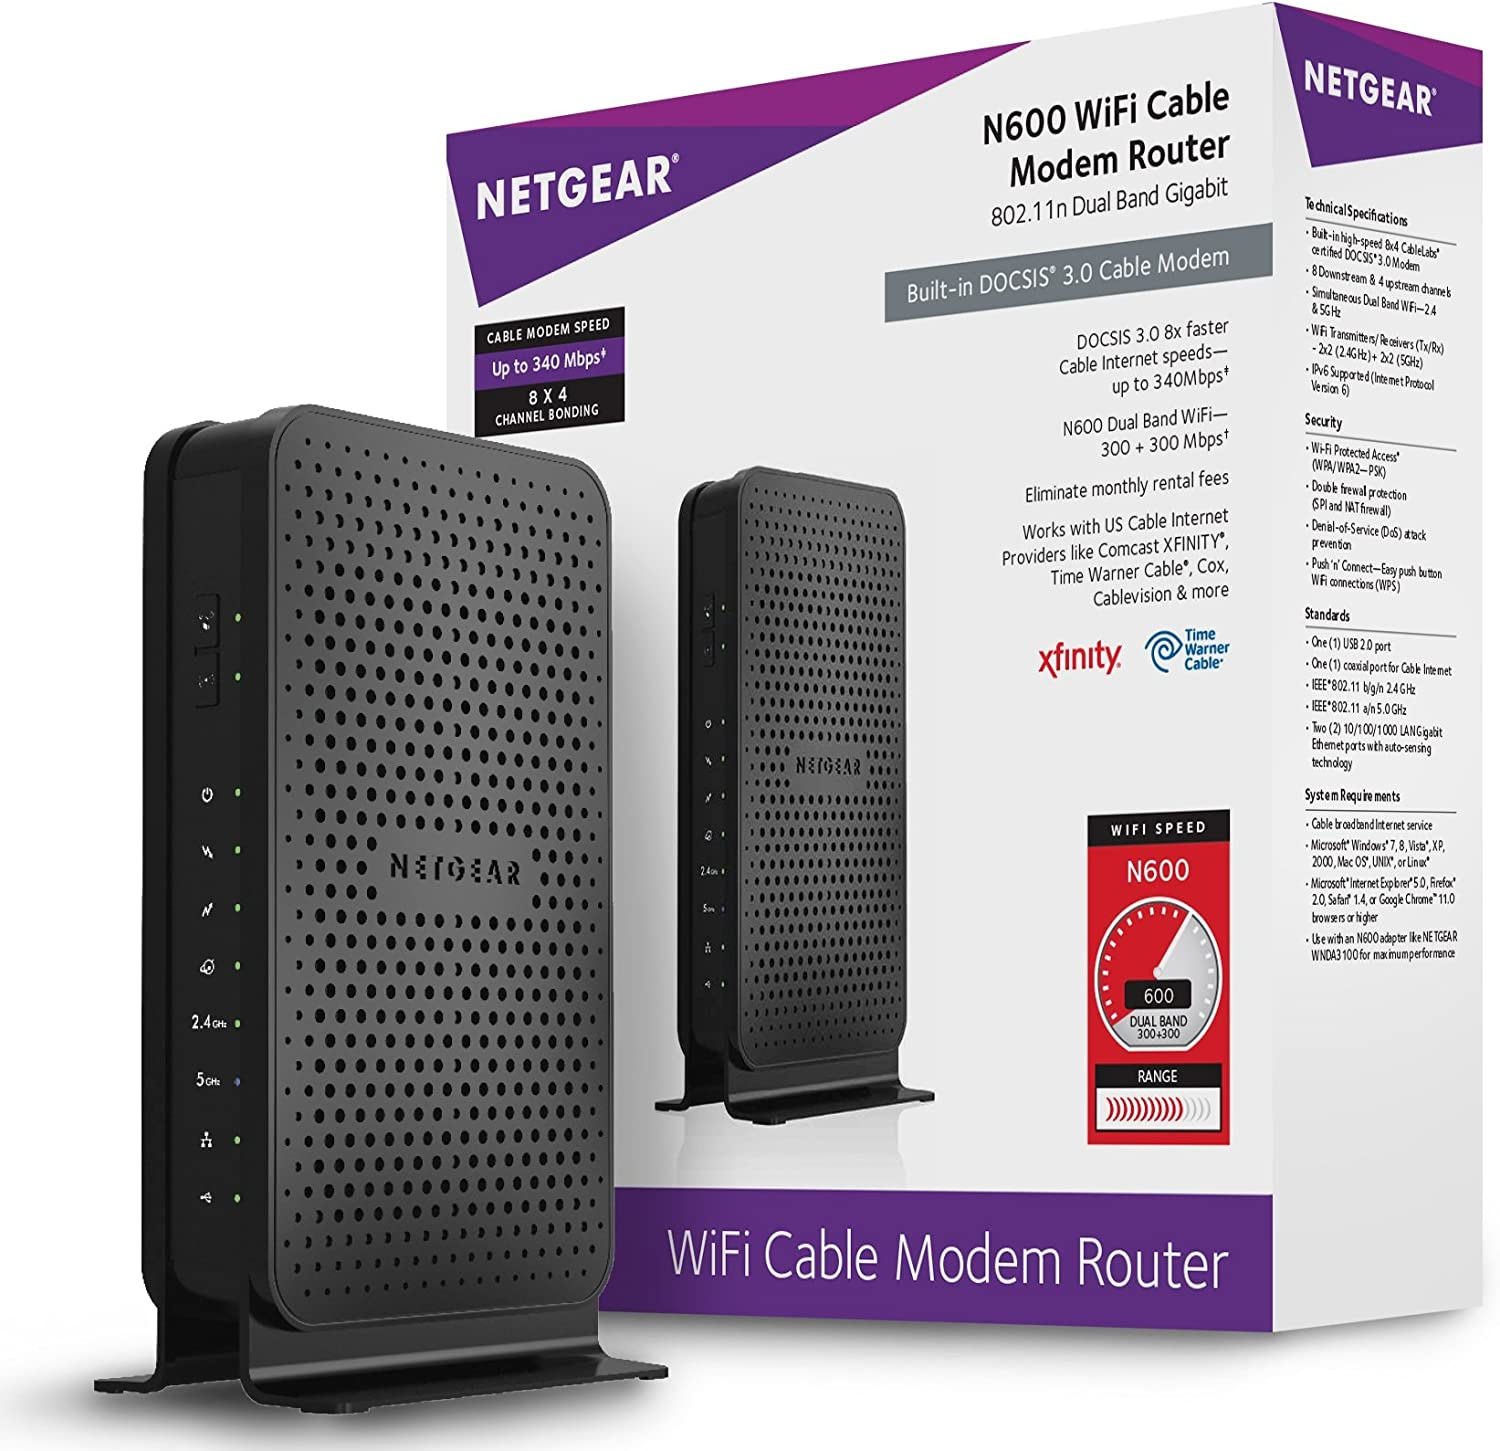 Amazon Com Netgear N600 8x4 Wifi Docsis 3 0 Cable Modem Router C3700 Certified For Xfinity From Comcast Spectrum Cox Spectrum More Computers Accessories